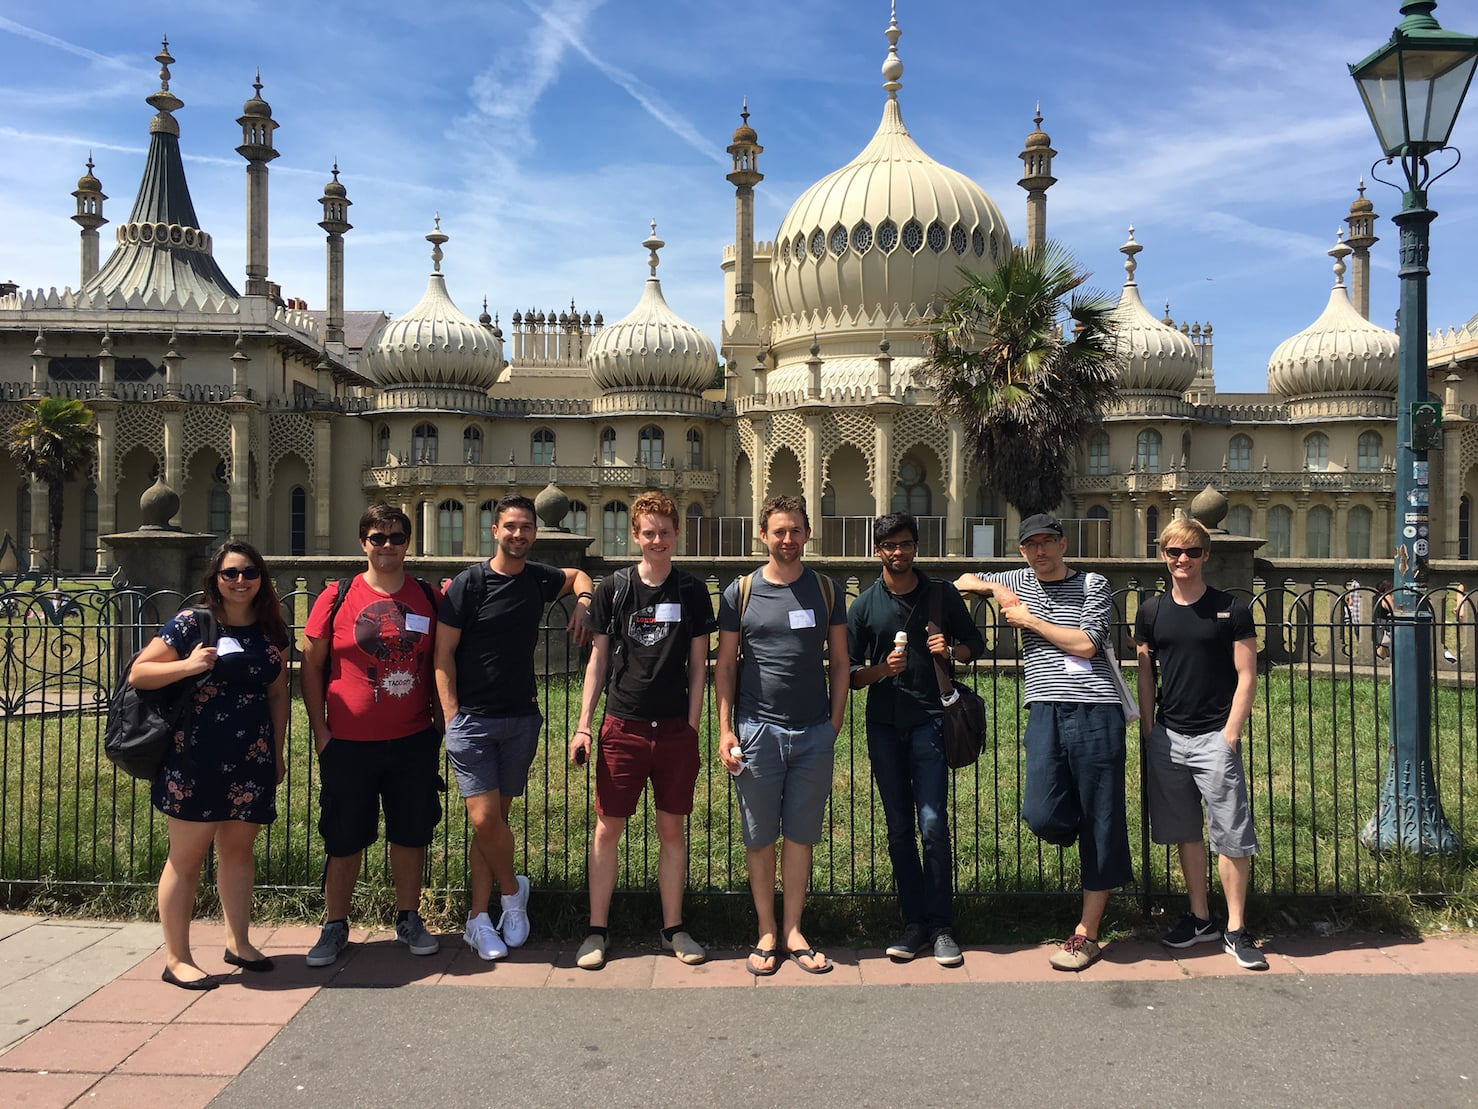 Brighton Ruby 2017 - Unboxed developers outside the Brighton Pavilion